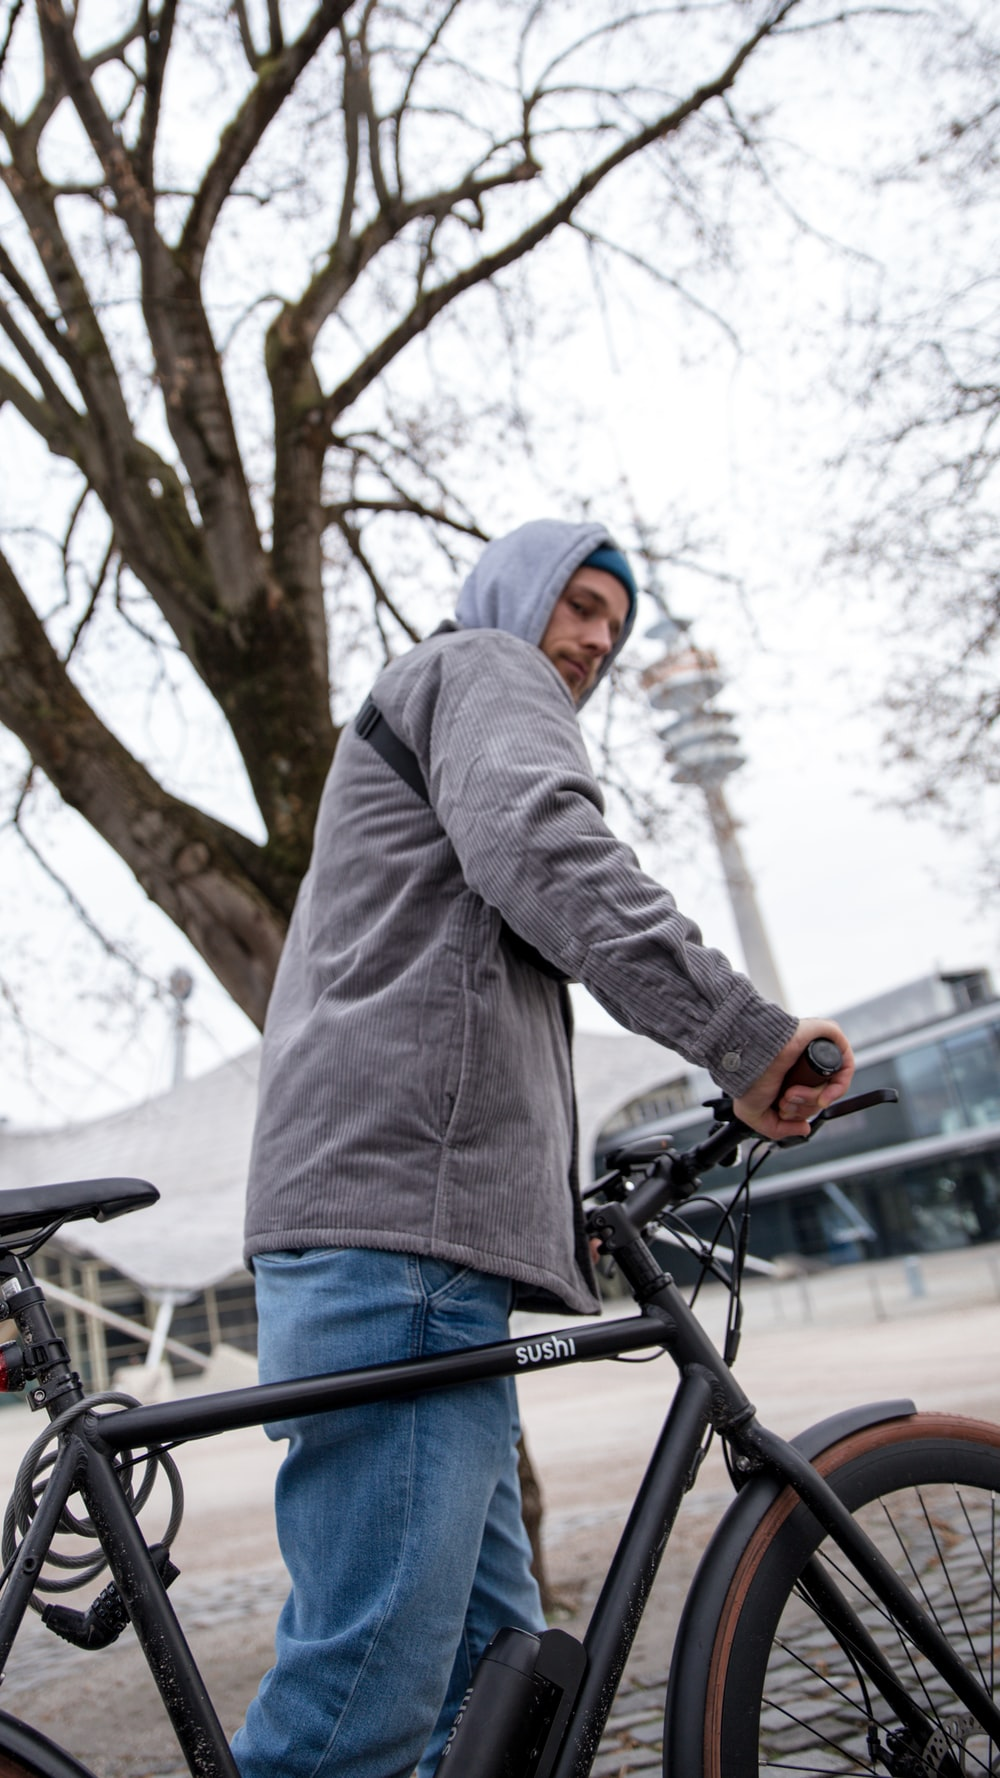 man in gray hoodie and blue denim jeans riding on bicycle during daytime